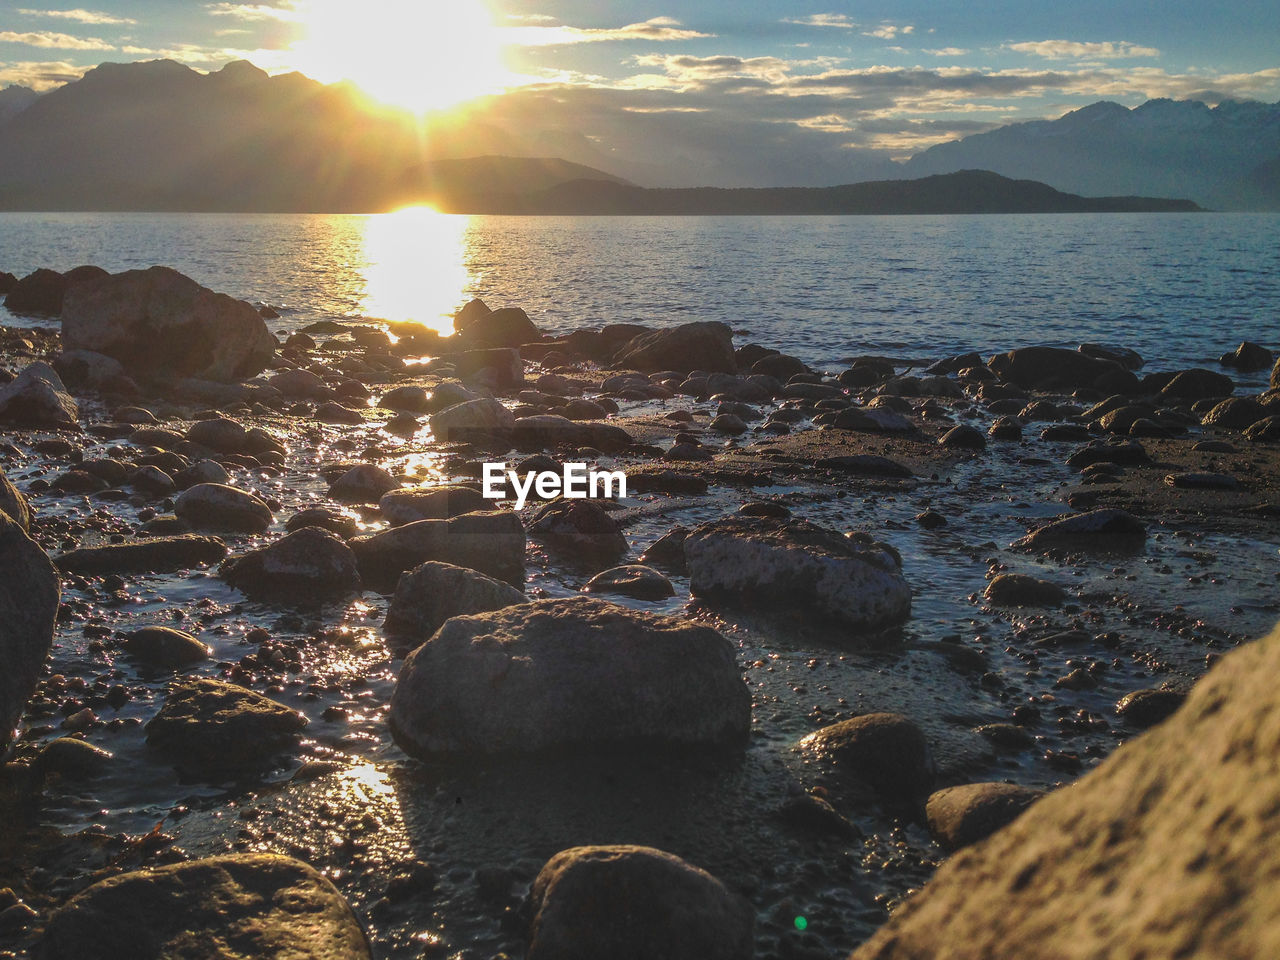 water, sea, sky, beauty in nature, land, sunset, sunlight, beach, rock, tranquility, nature, scenics - nature, solid, rock - object, tranquil scene, sunbeam, no people, sun, idyllic, outdoors, lens flare